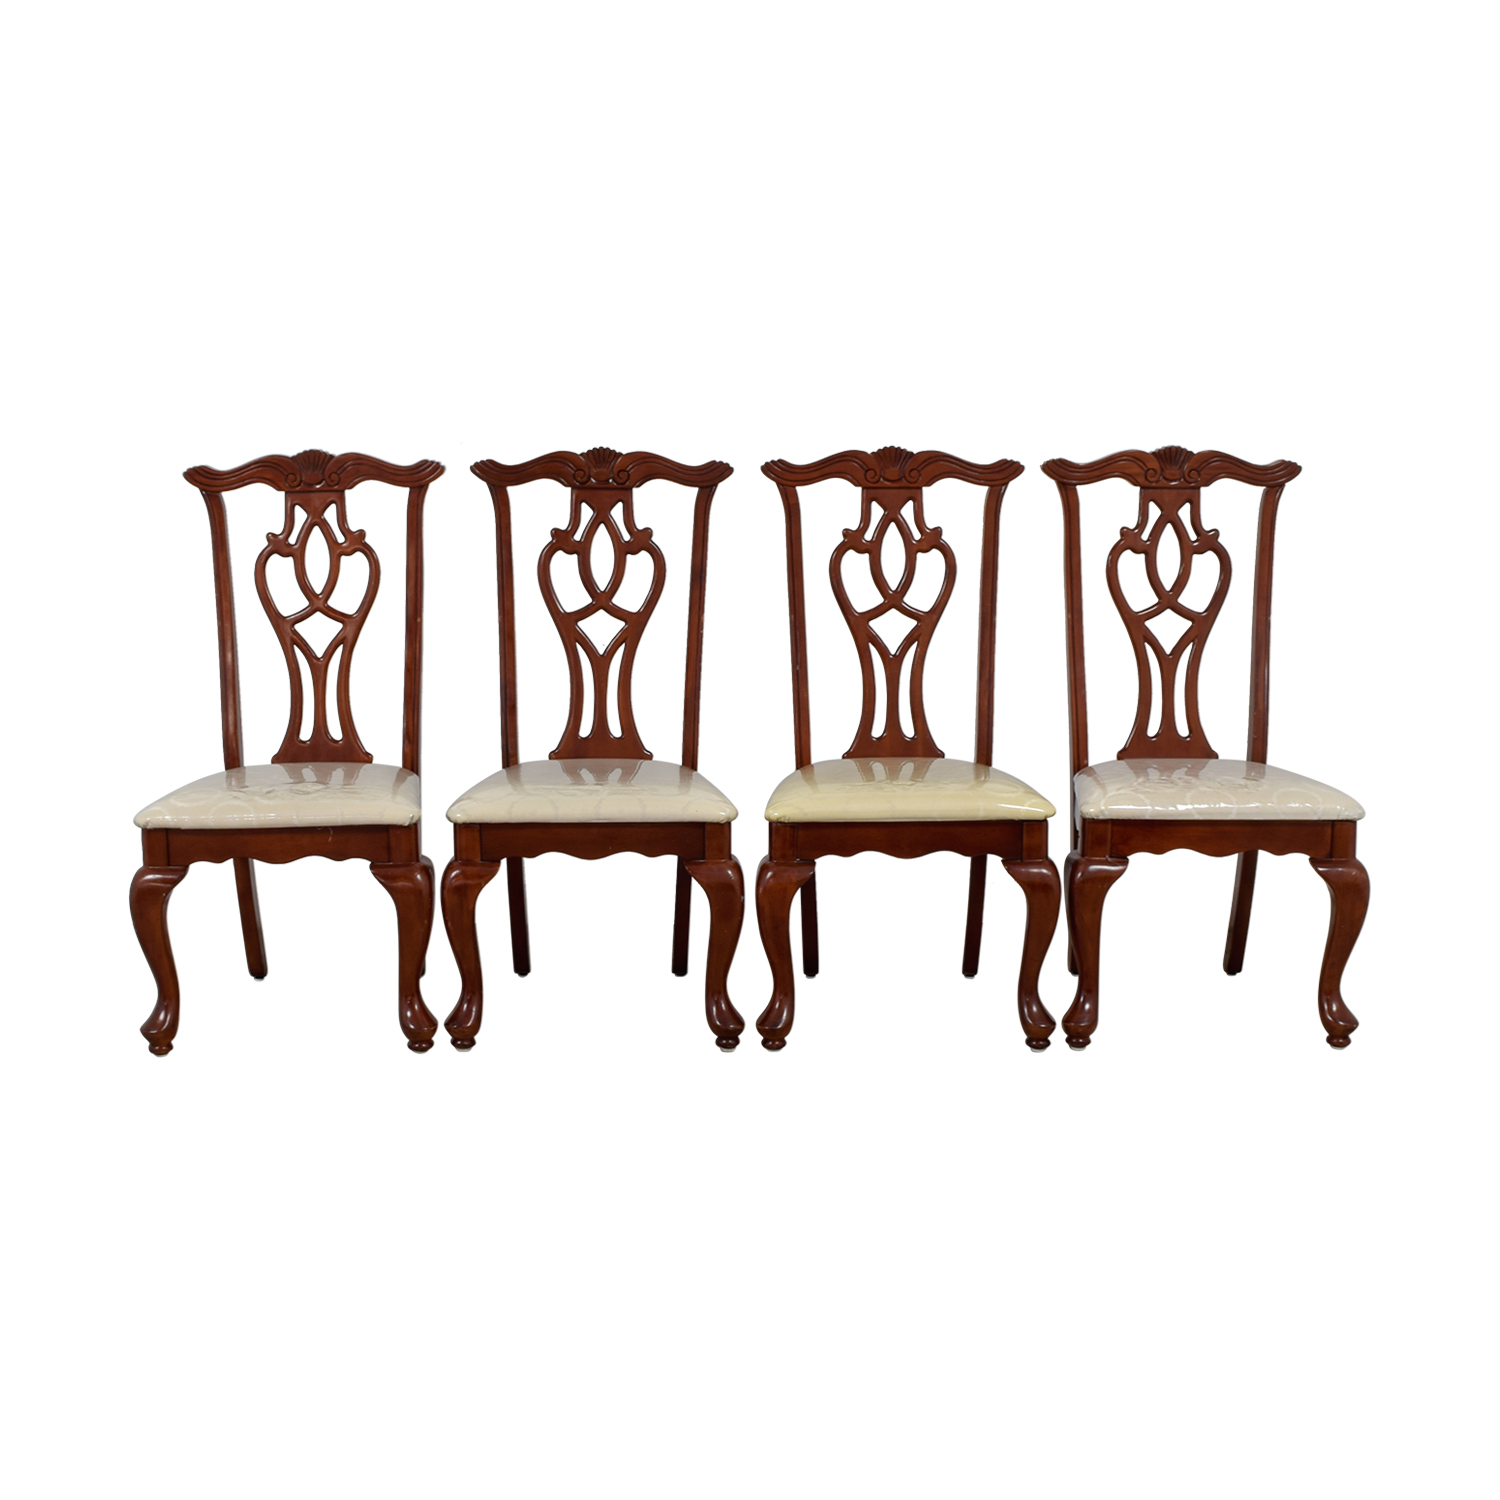 87 OFF  Off White Upholstered Cherry Wood Dining Chairs